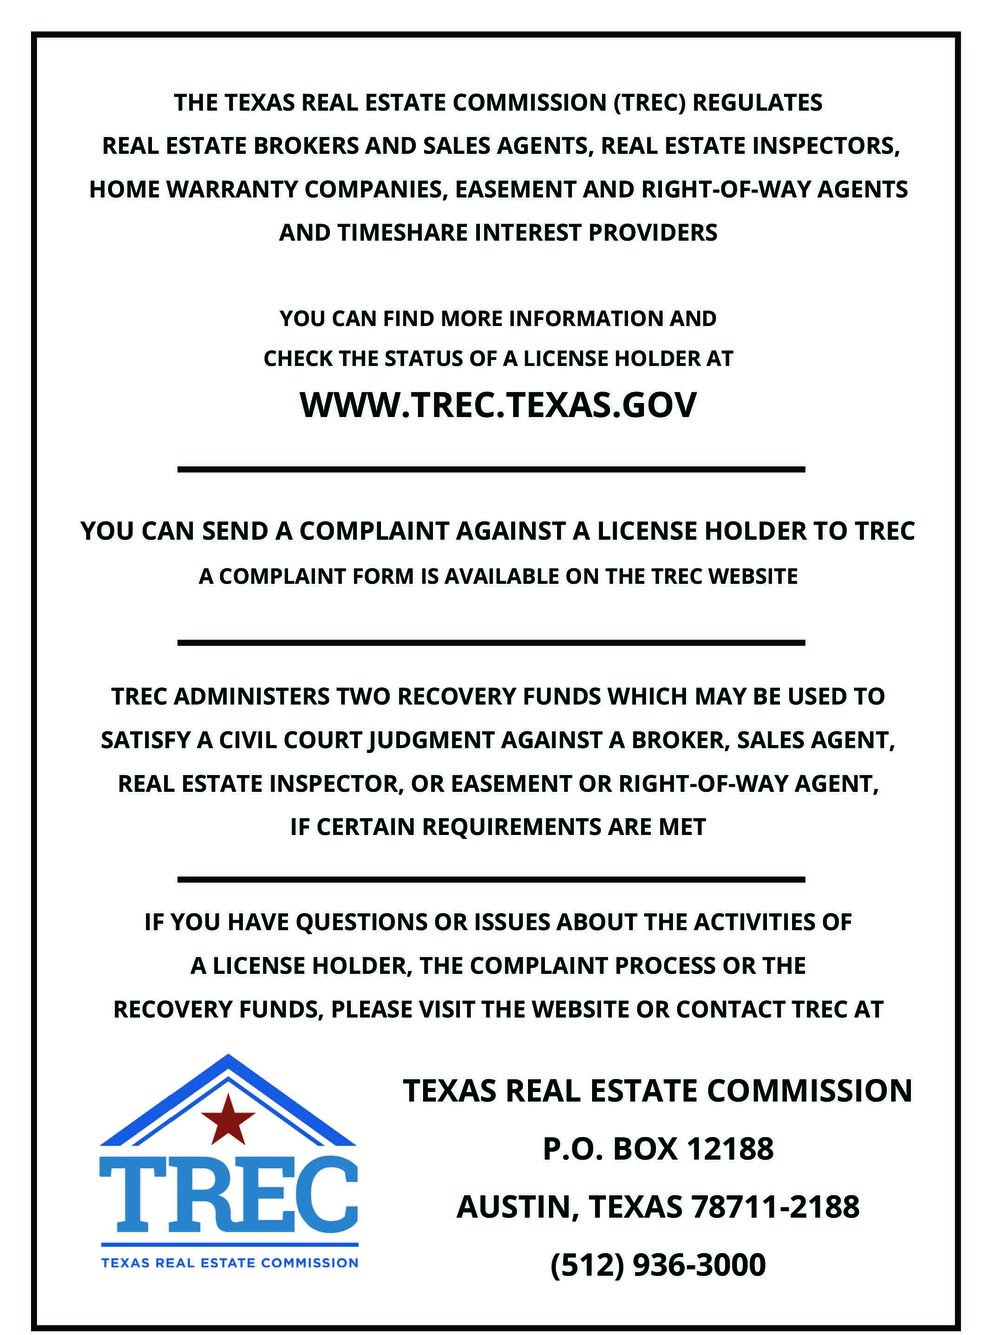 Consumer Protection Notice (Click to enlarge)